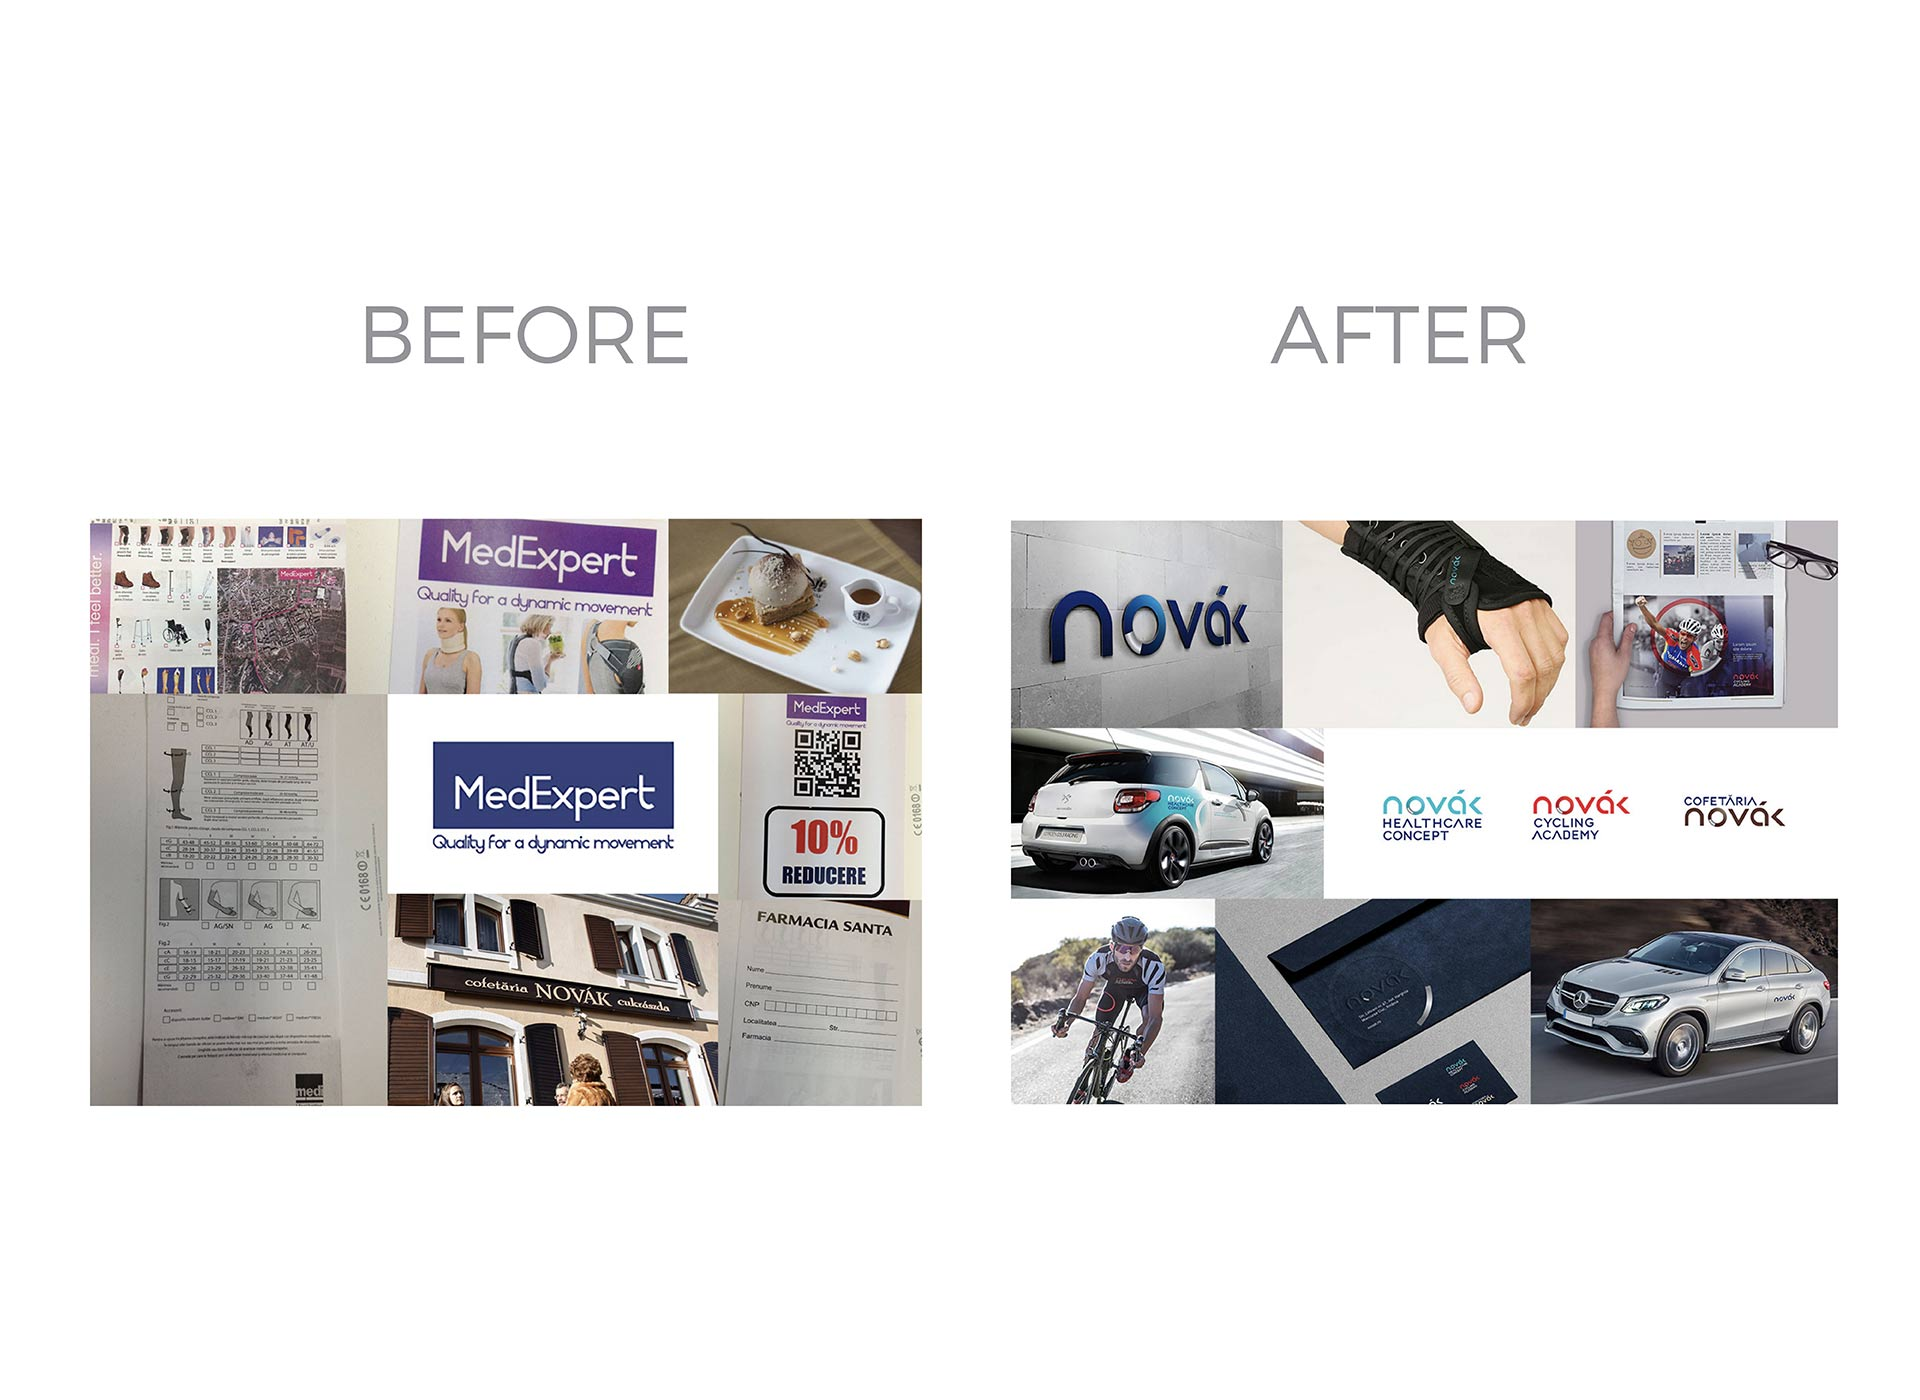 novak portfolio before and after rebranding